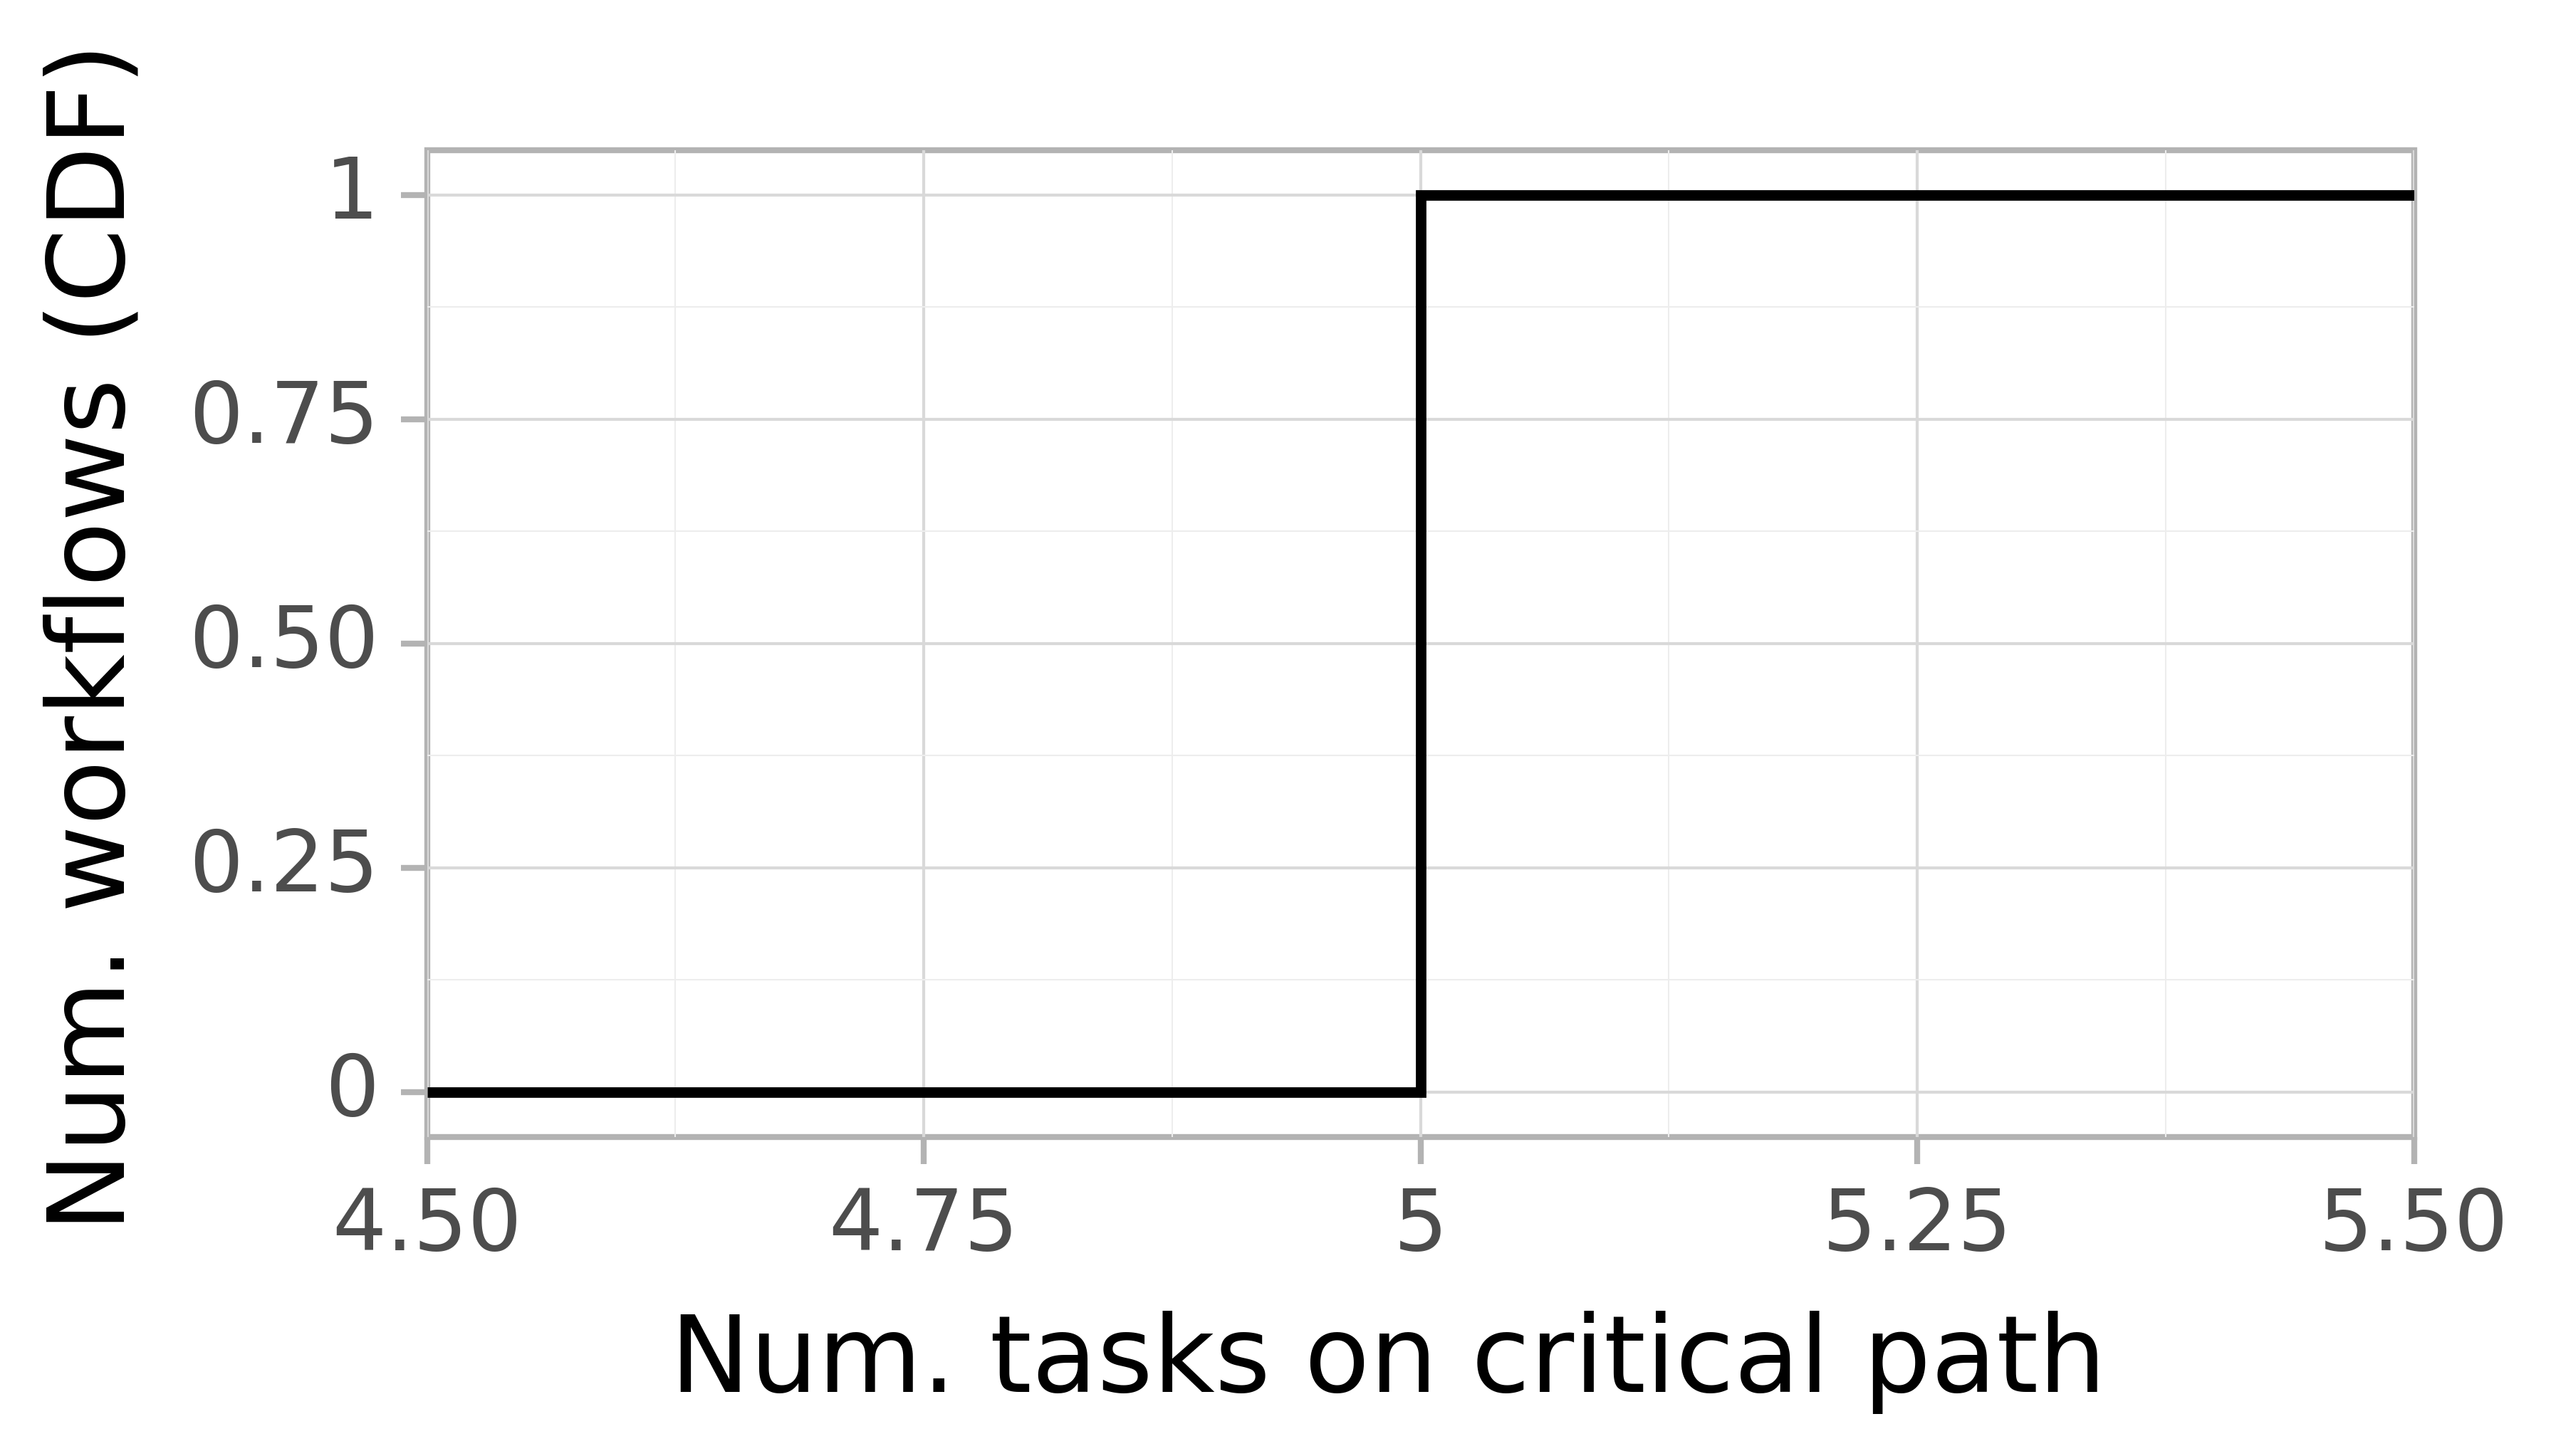 Job critical path task count graph for the askalon-new_ee25 trace.